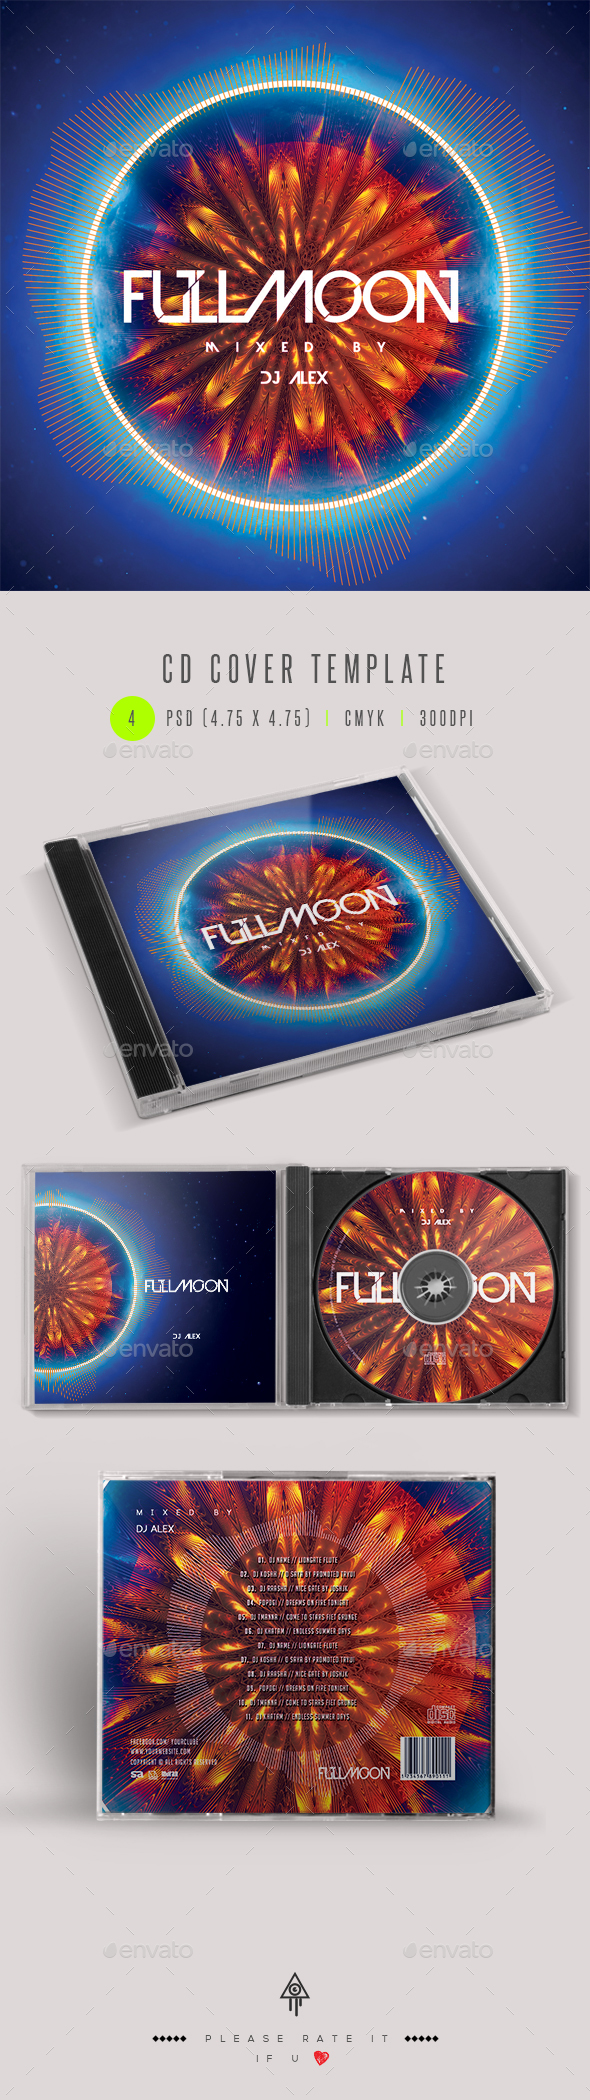 Fullmoon CD DVD Cover Artwork - CD & DVD Artwork Print Templates